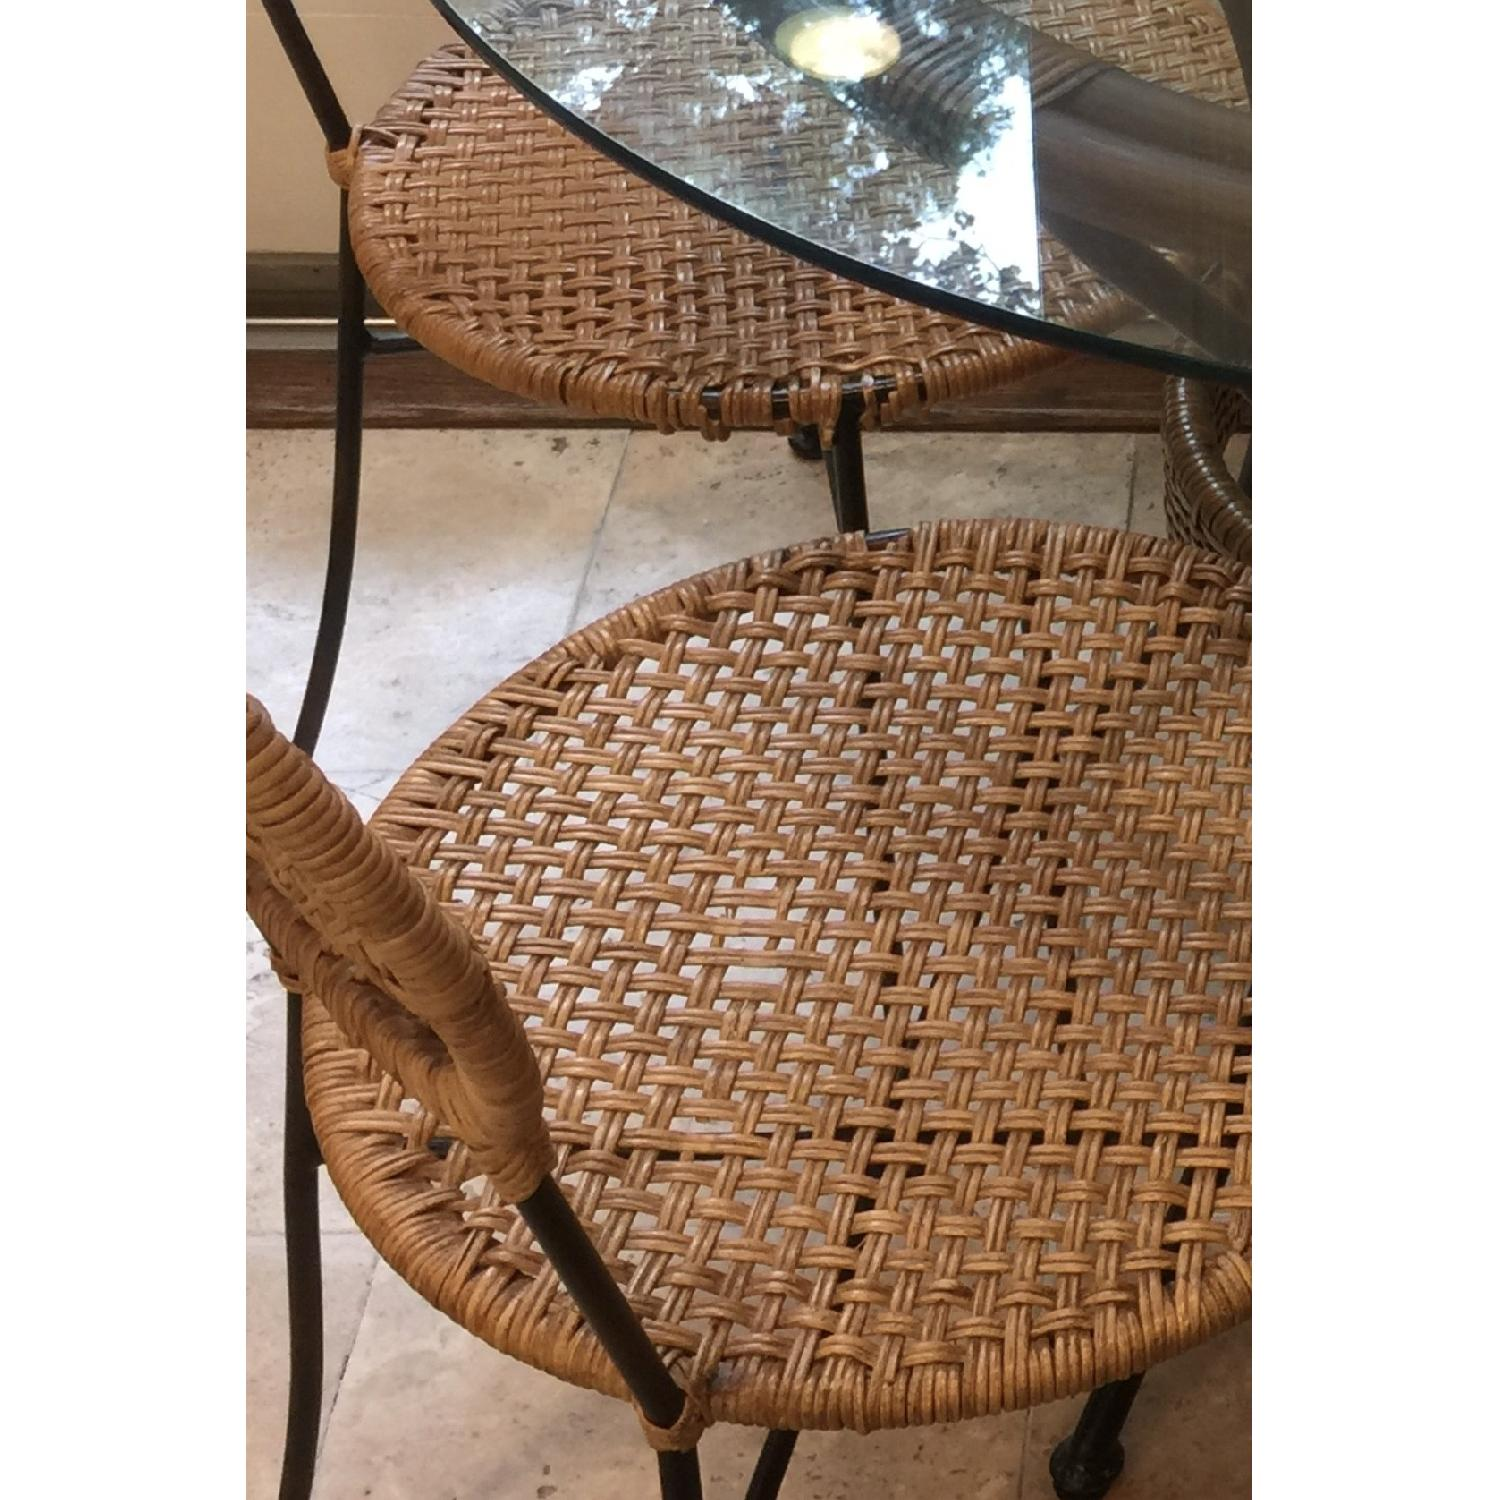 Pier 1 Round Glass Dining Table w/ 4 Chairs - image-3